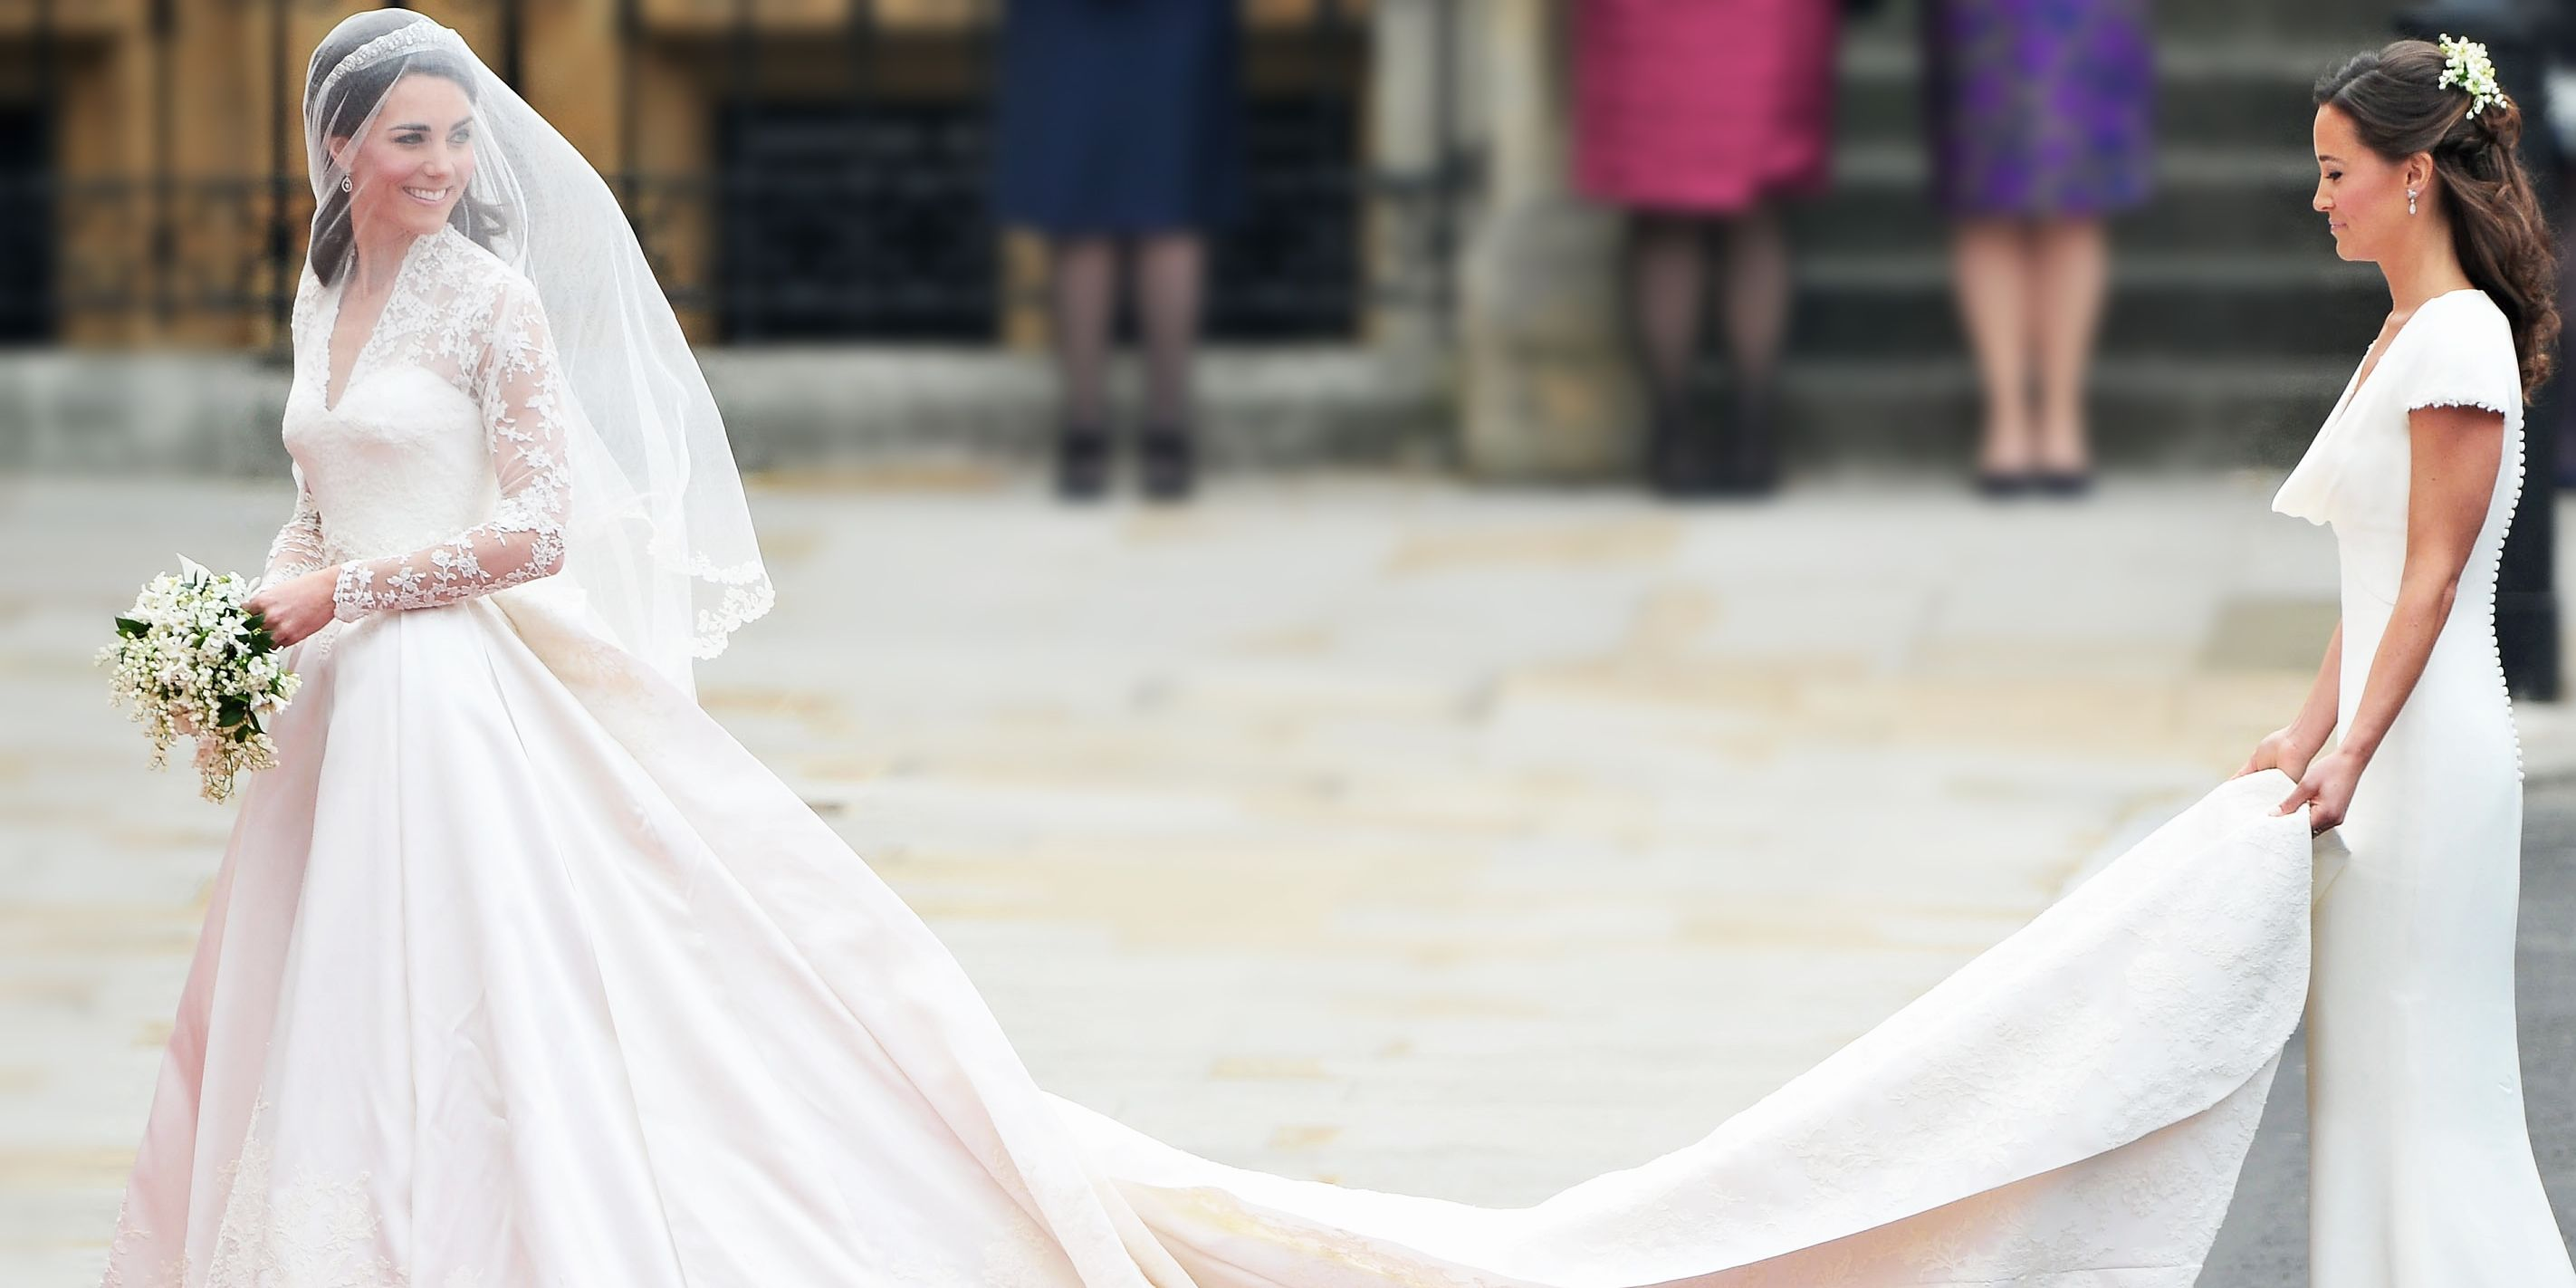 8 Gorgeous Royal Wedding Dresses To Shop For Your Big Day: Diana Replica Wedding Dress At Reisefeber.org